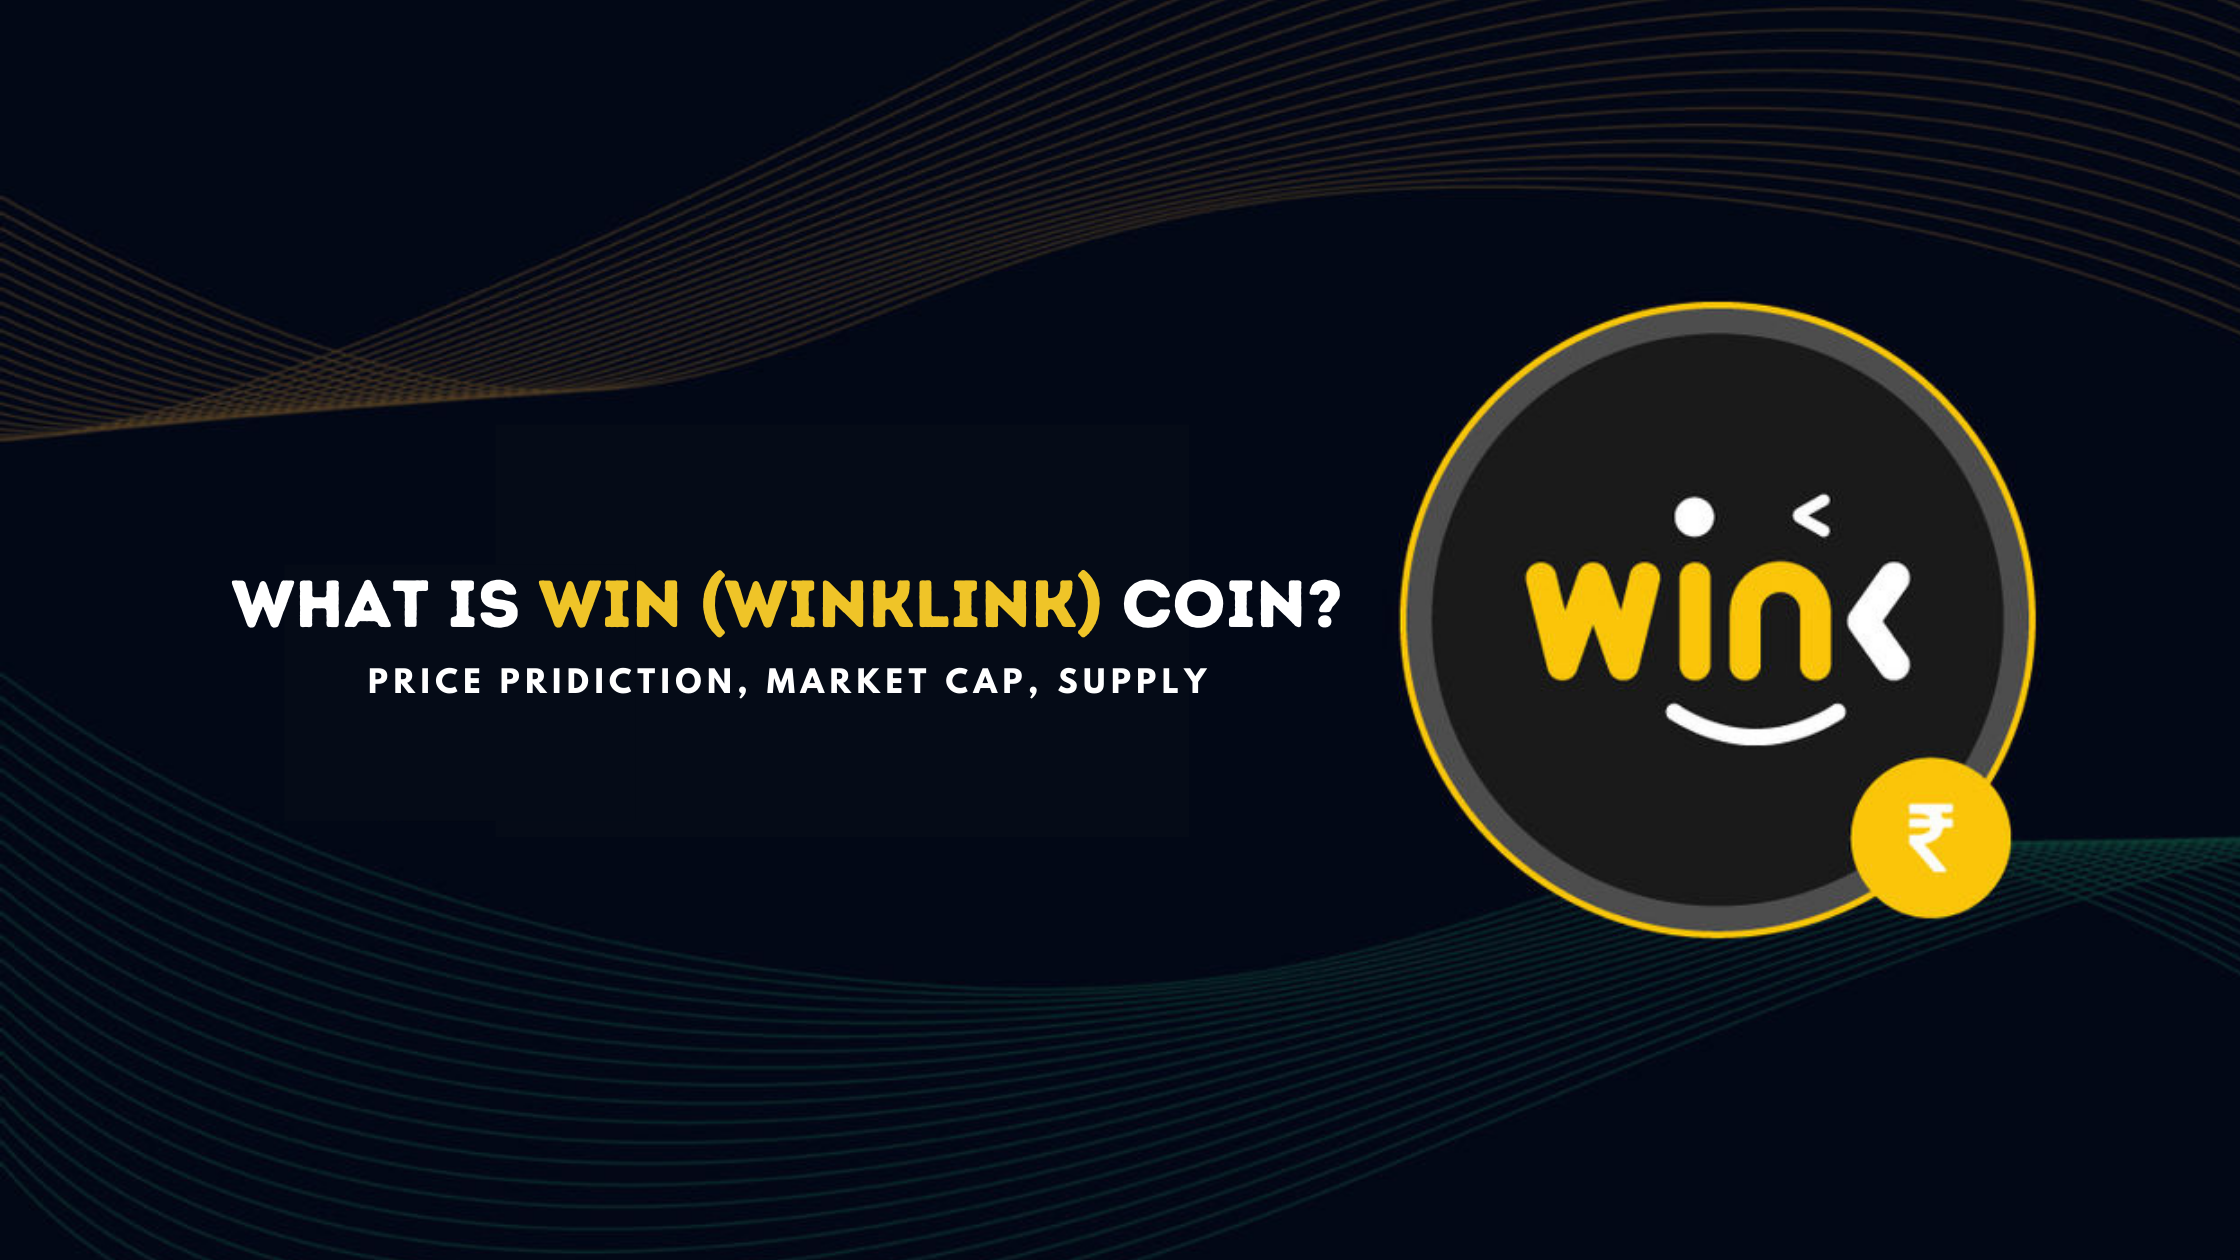 What is Win Coin?